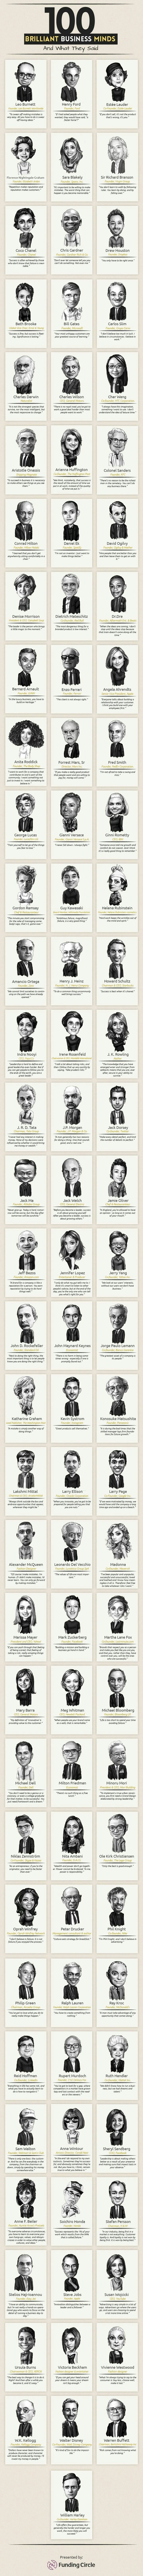 One hundred business minds and their quotes